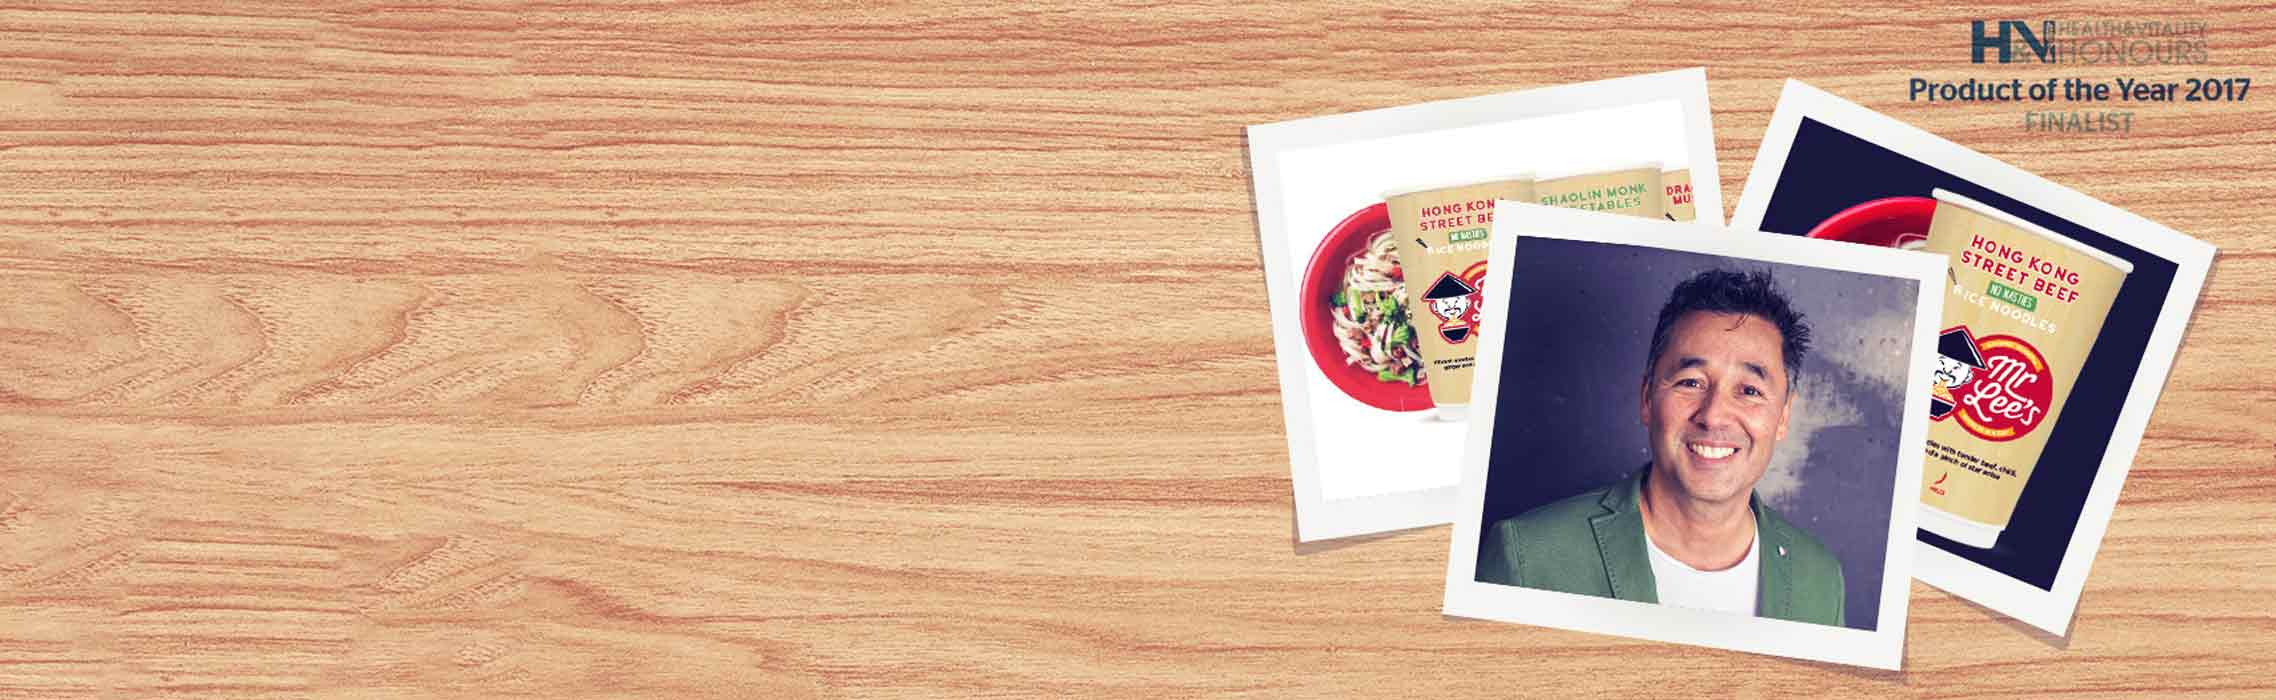 What's Your Story? Mr Lee's Noodles Say No To Nasties!